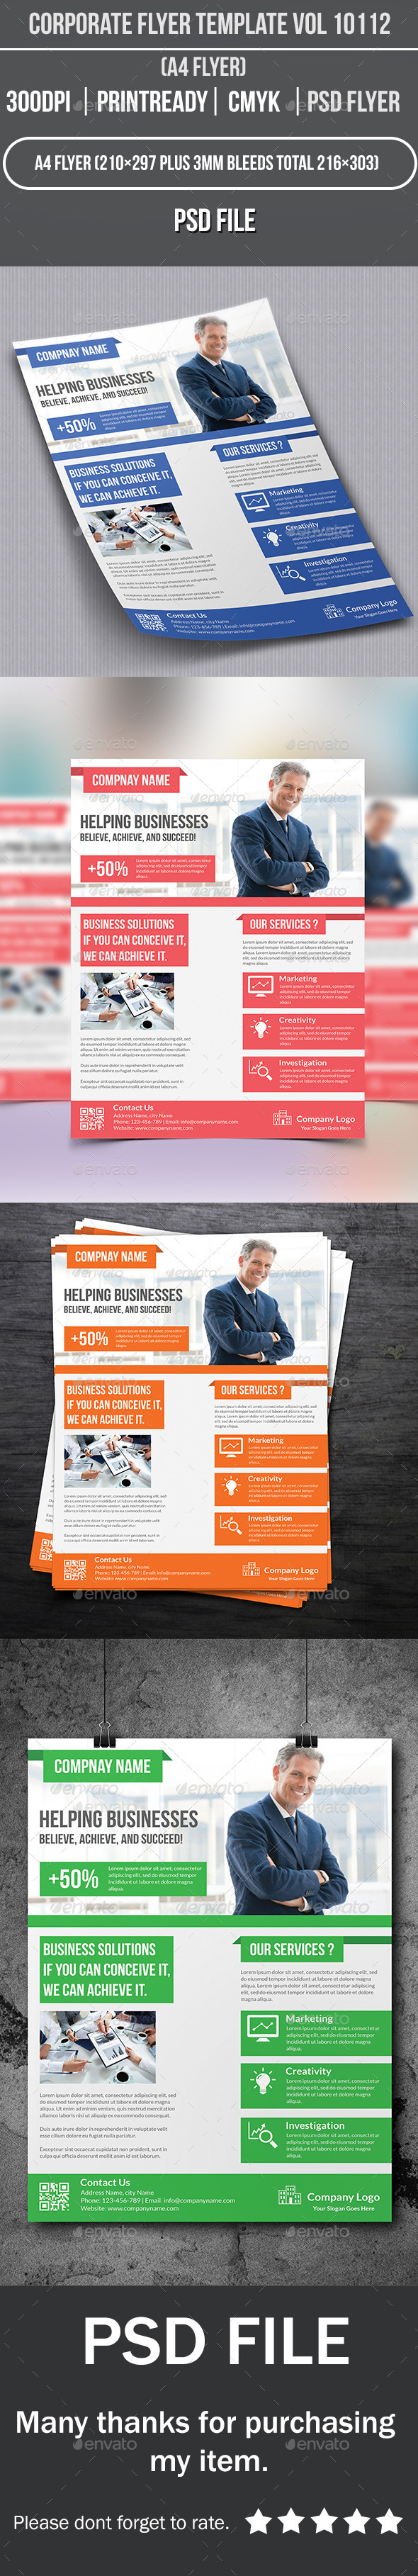 Corporate Flyer Template Vol 10112 - Corporate Flyers